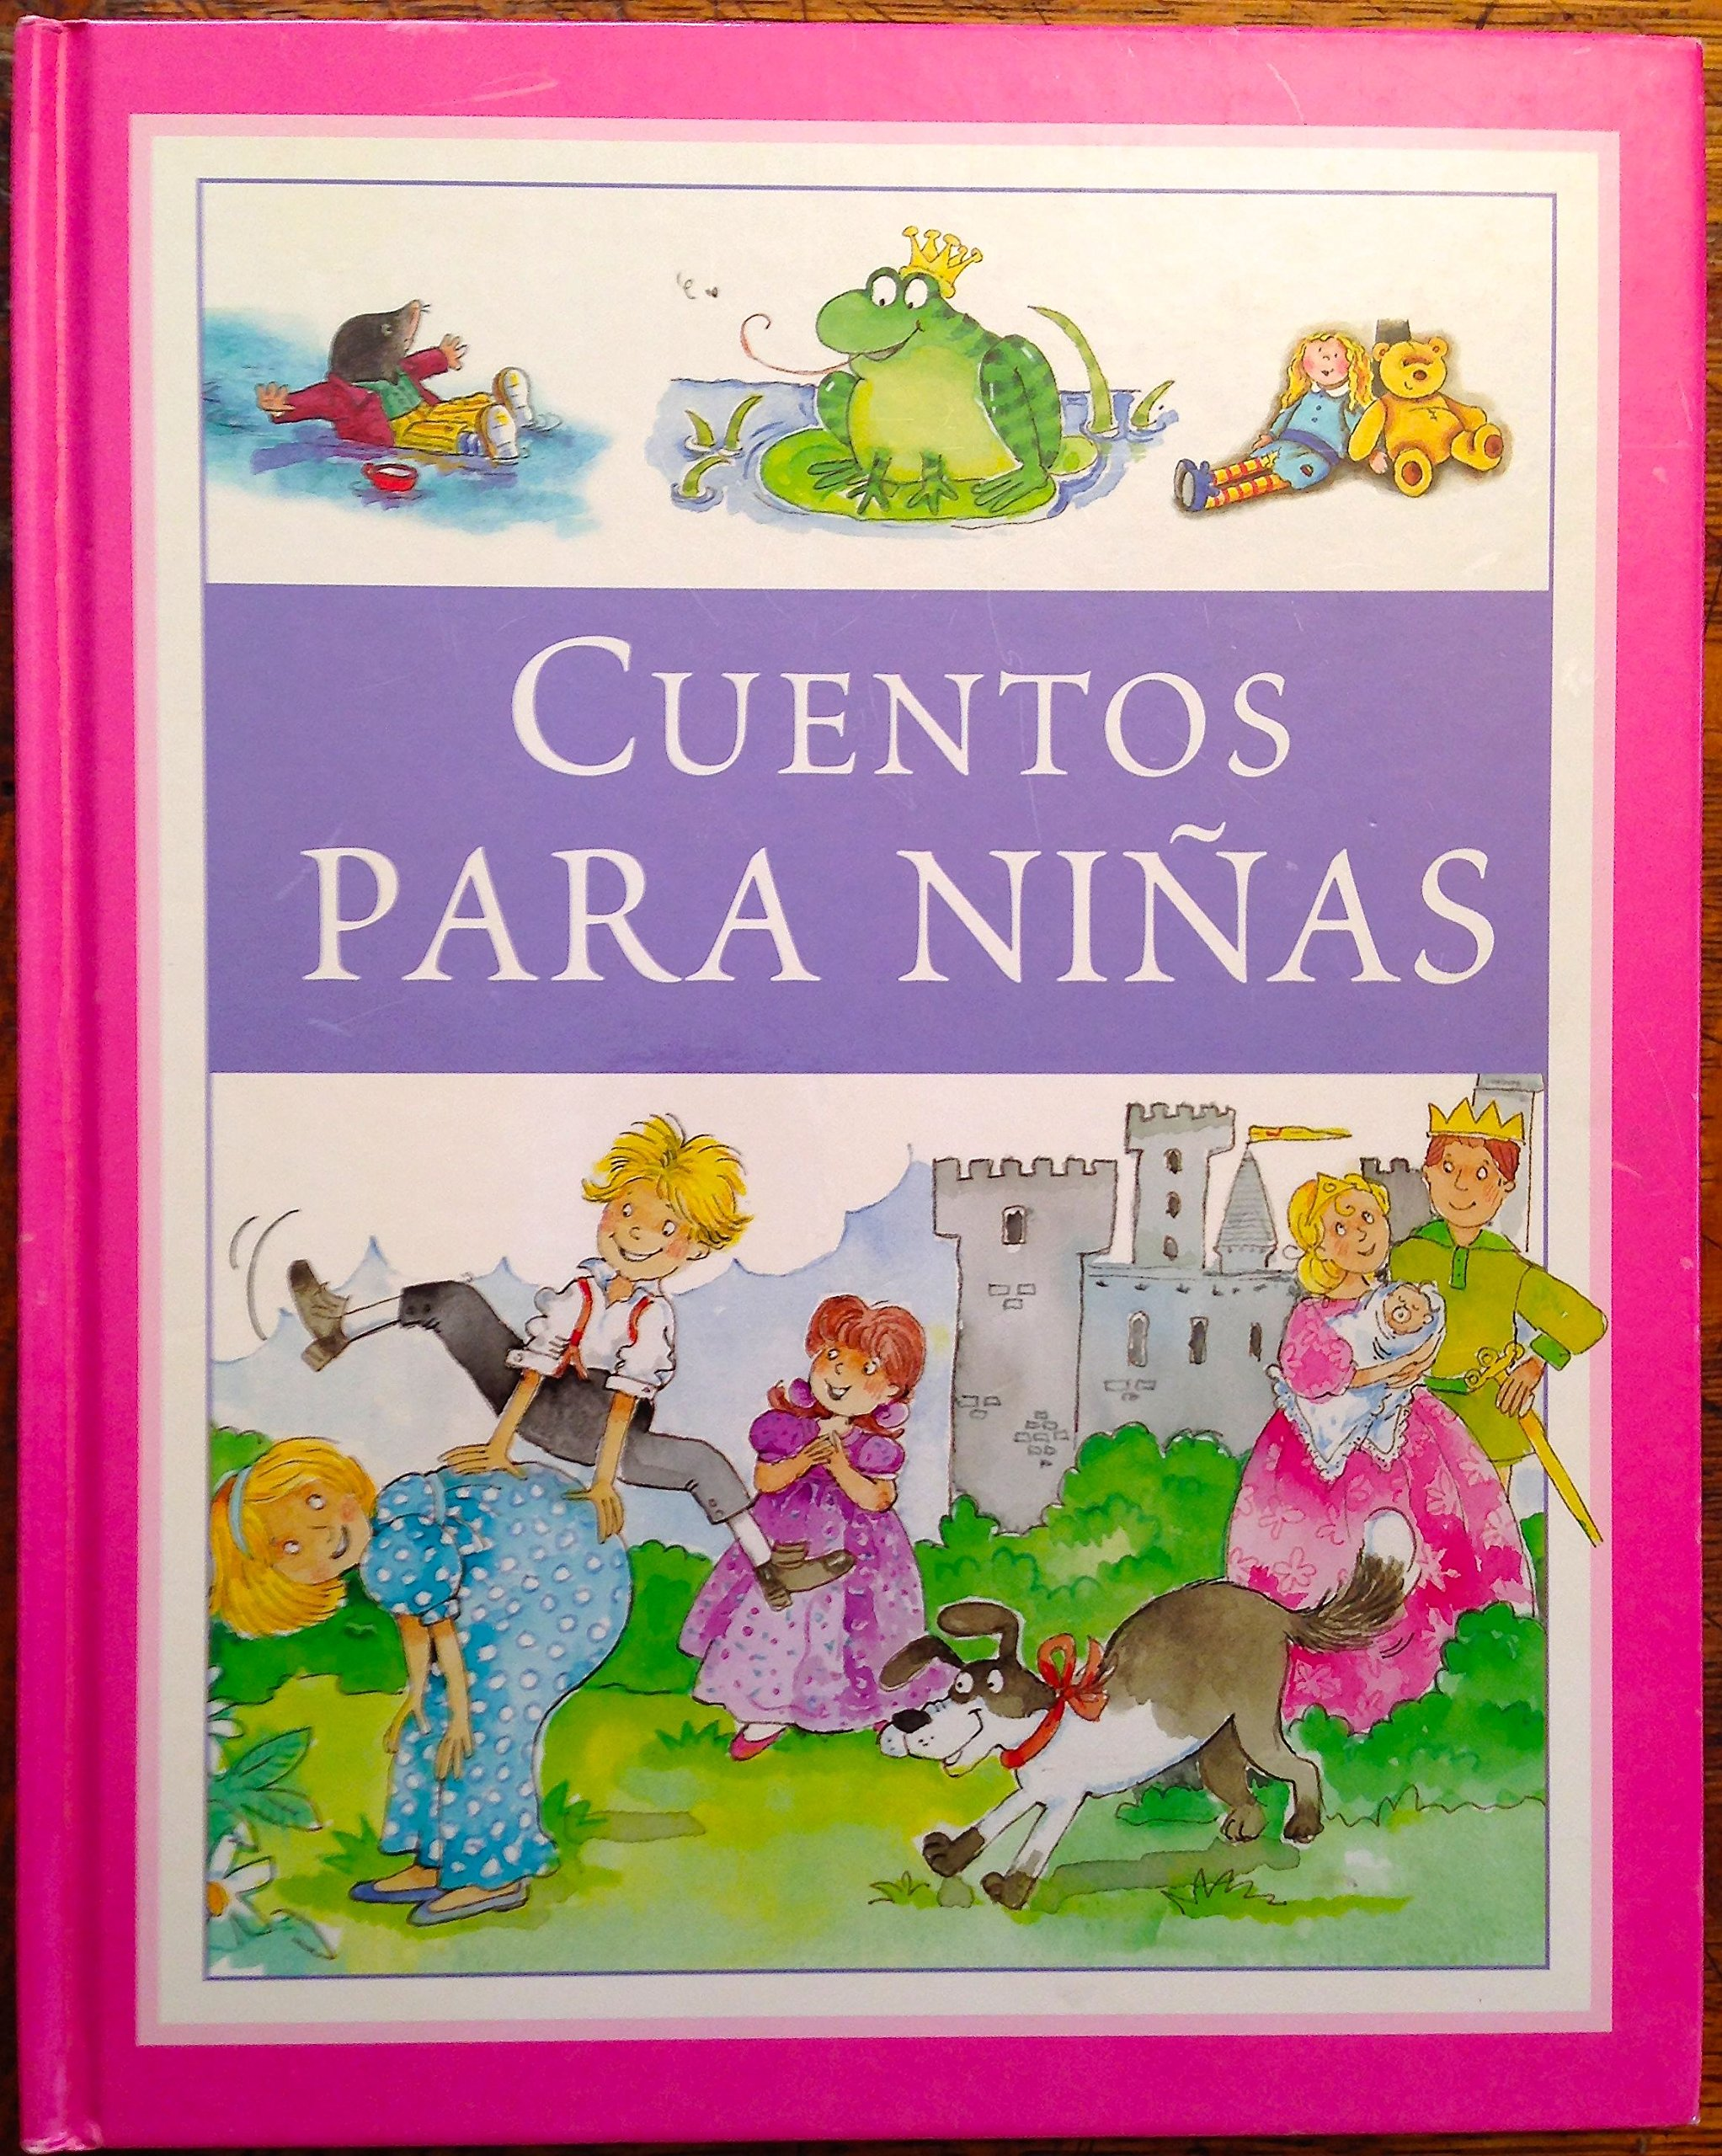 Cuentos Para Niñas: Derek Hall, Alison Morris, Louisa somerville: 9781405499125: Amazon.com: Books